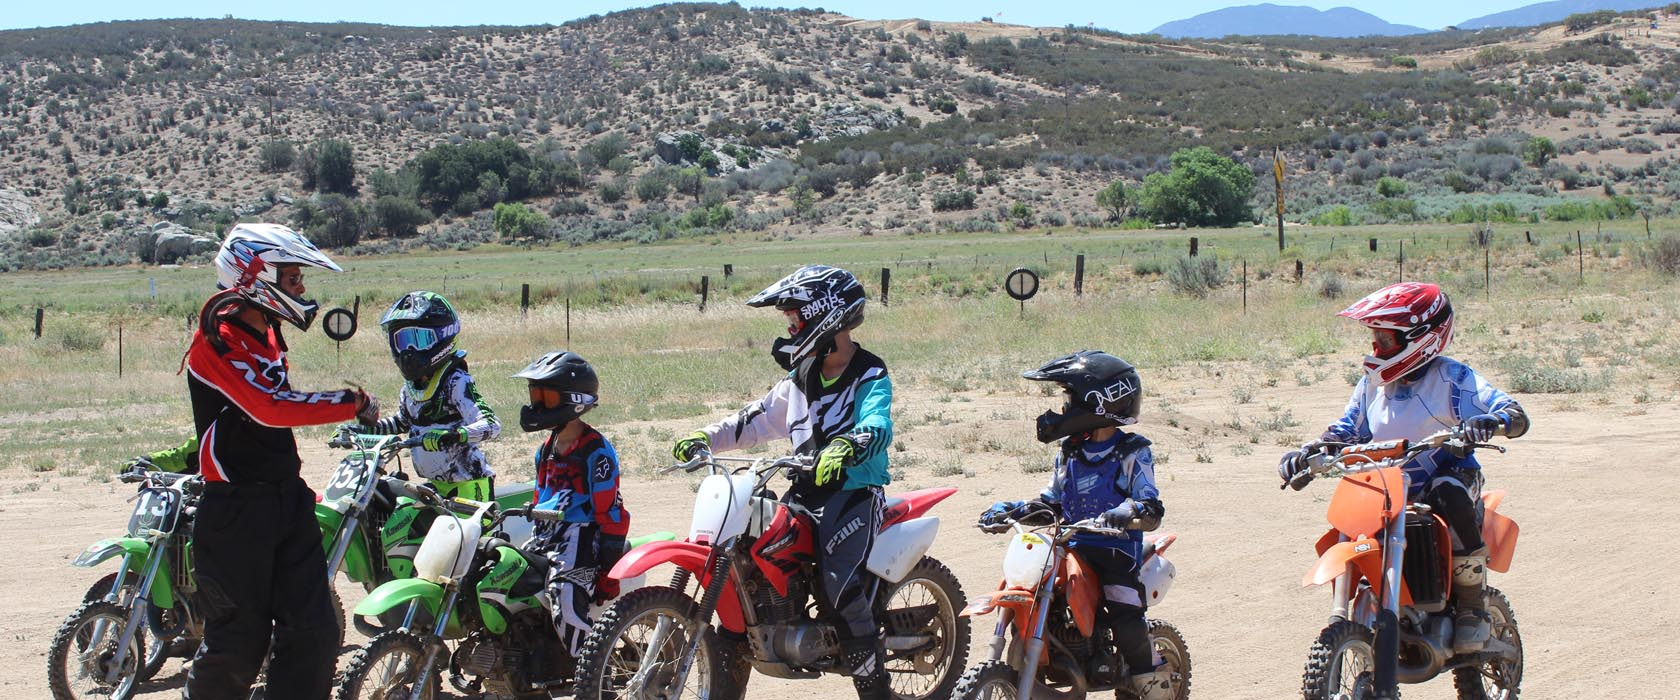 Motoventures Motorcycle Rider Training And Adventures